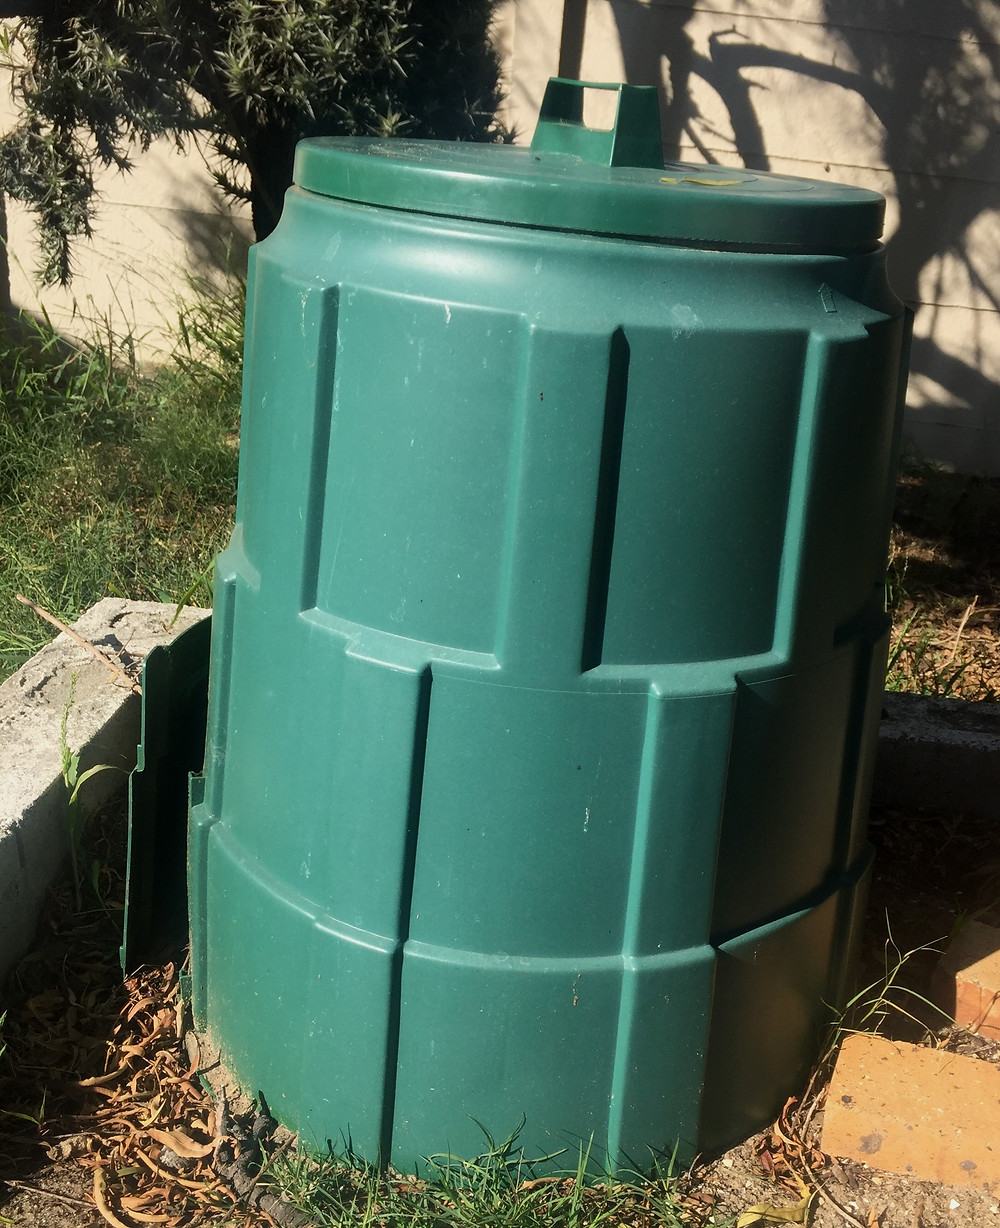 Composter bins in south Africa. Has locking top and slide at bottom to remove compost.